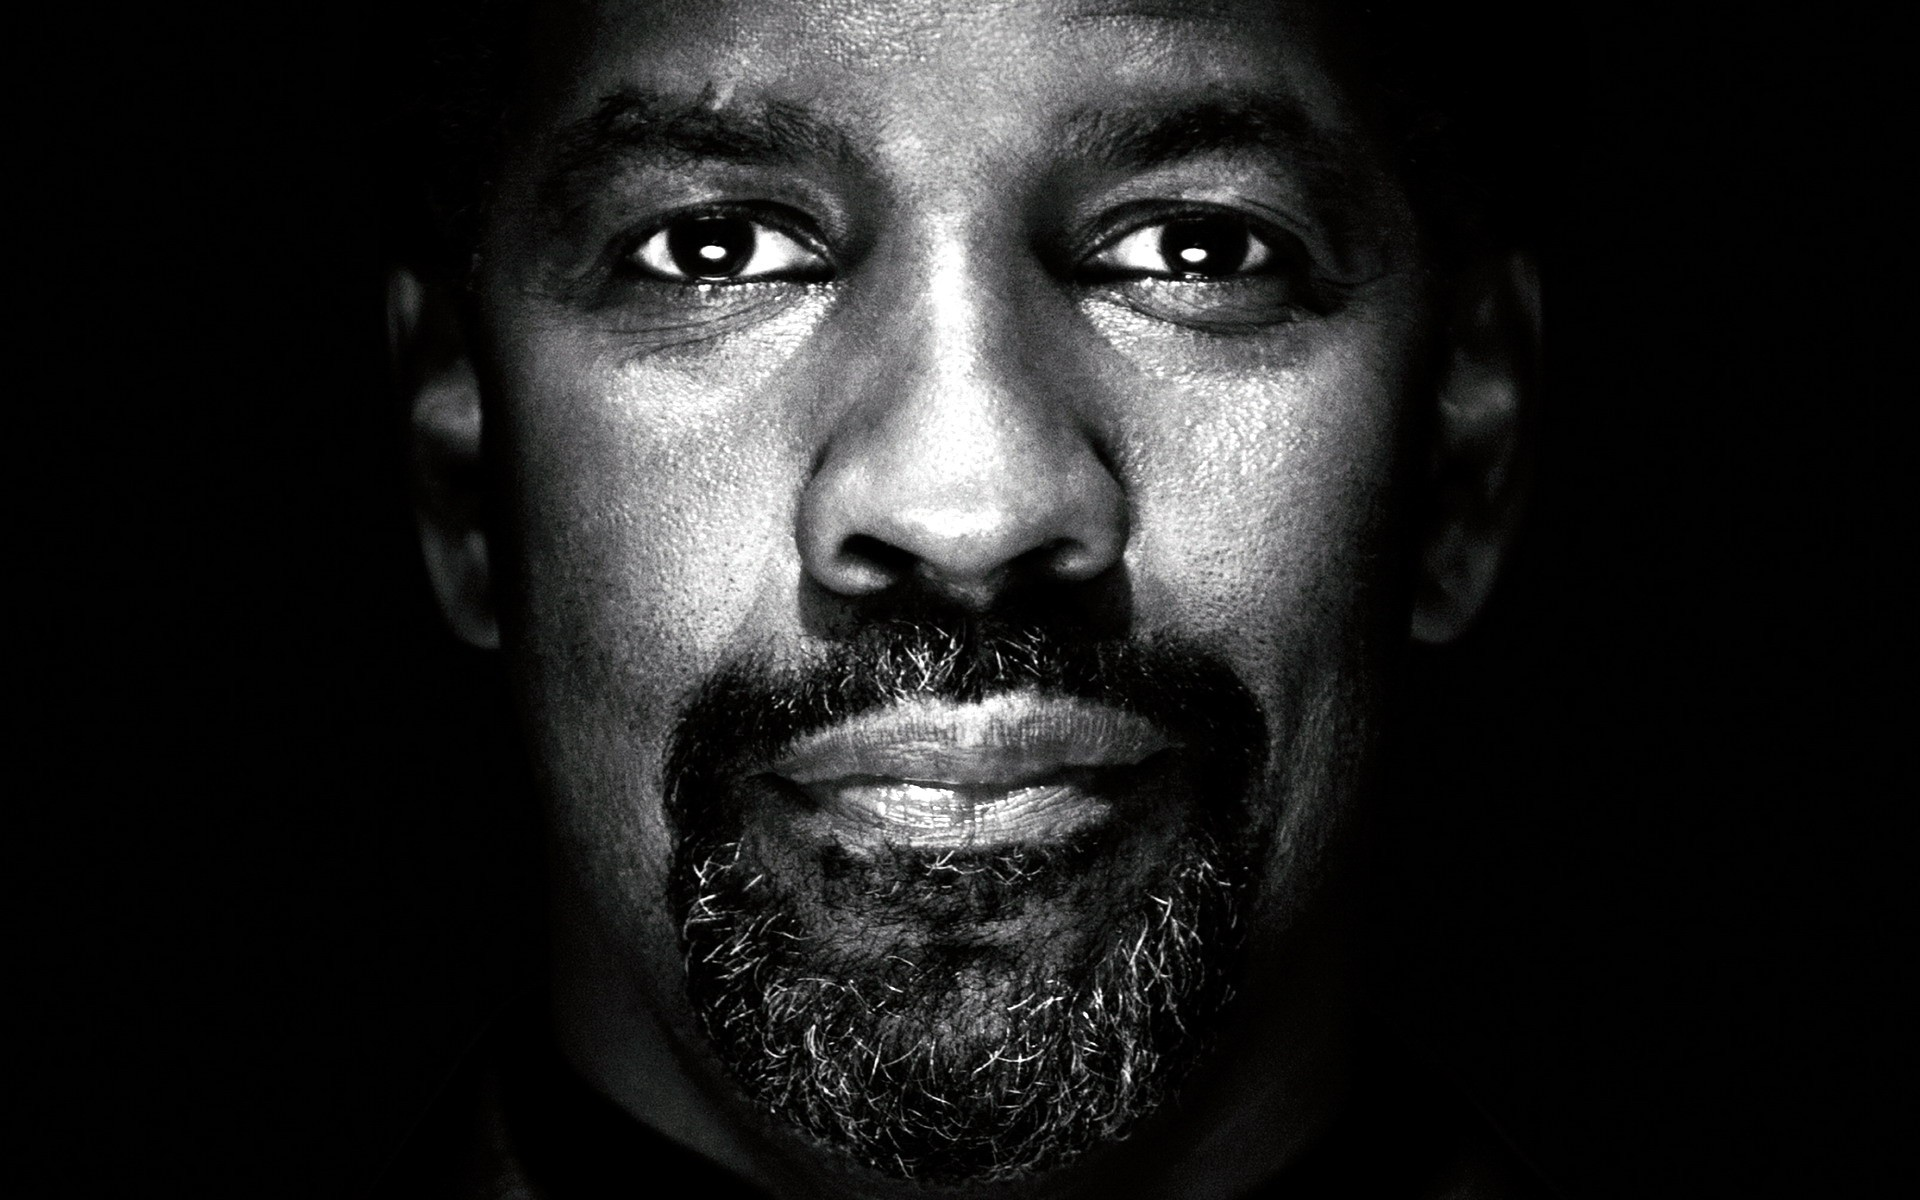 Sony Hack: Studio Warned Not to Cast Denzel Washington Due to His Race - Breitbart